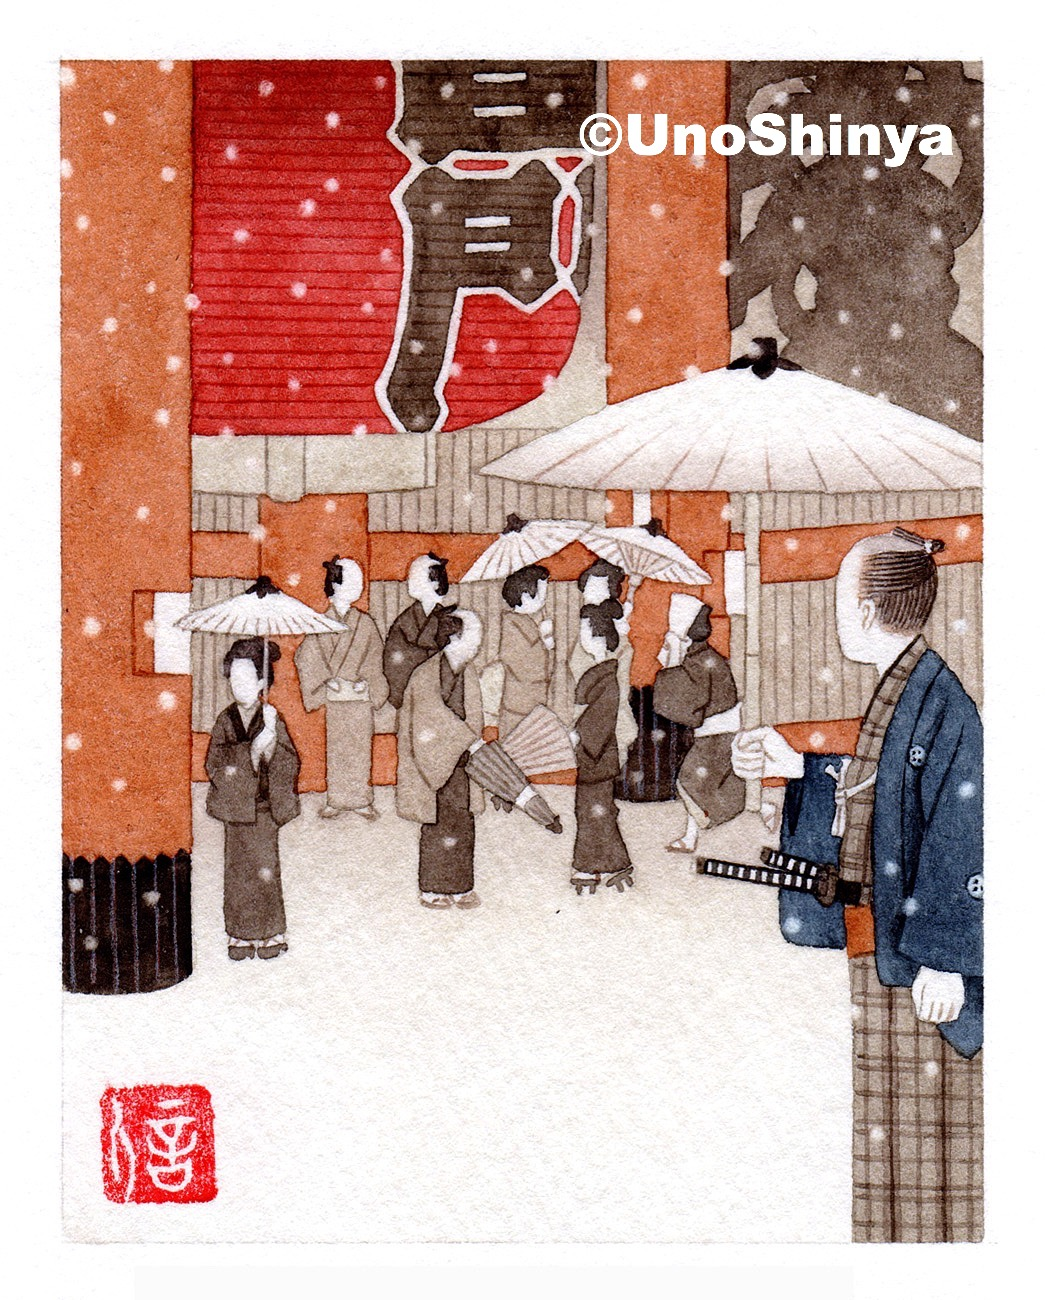 「Botanyuki 牡丹雪」| shinya uno illustration